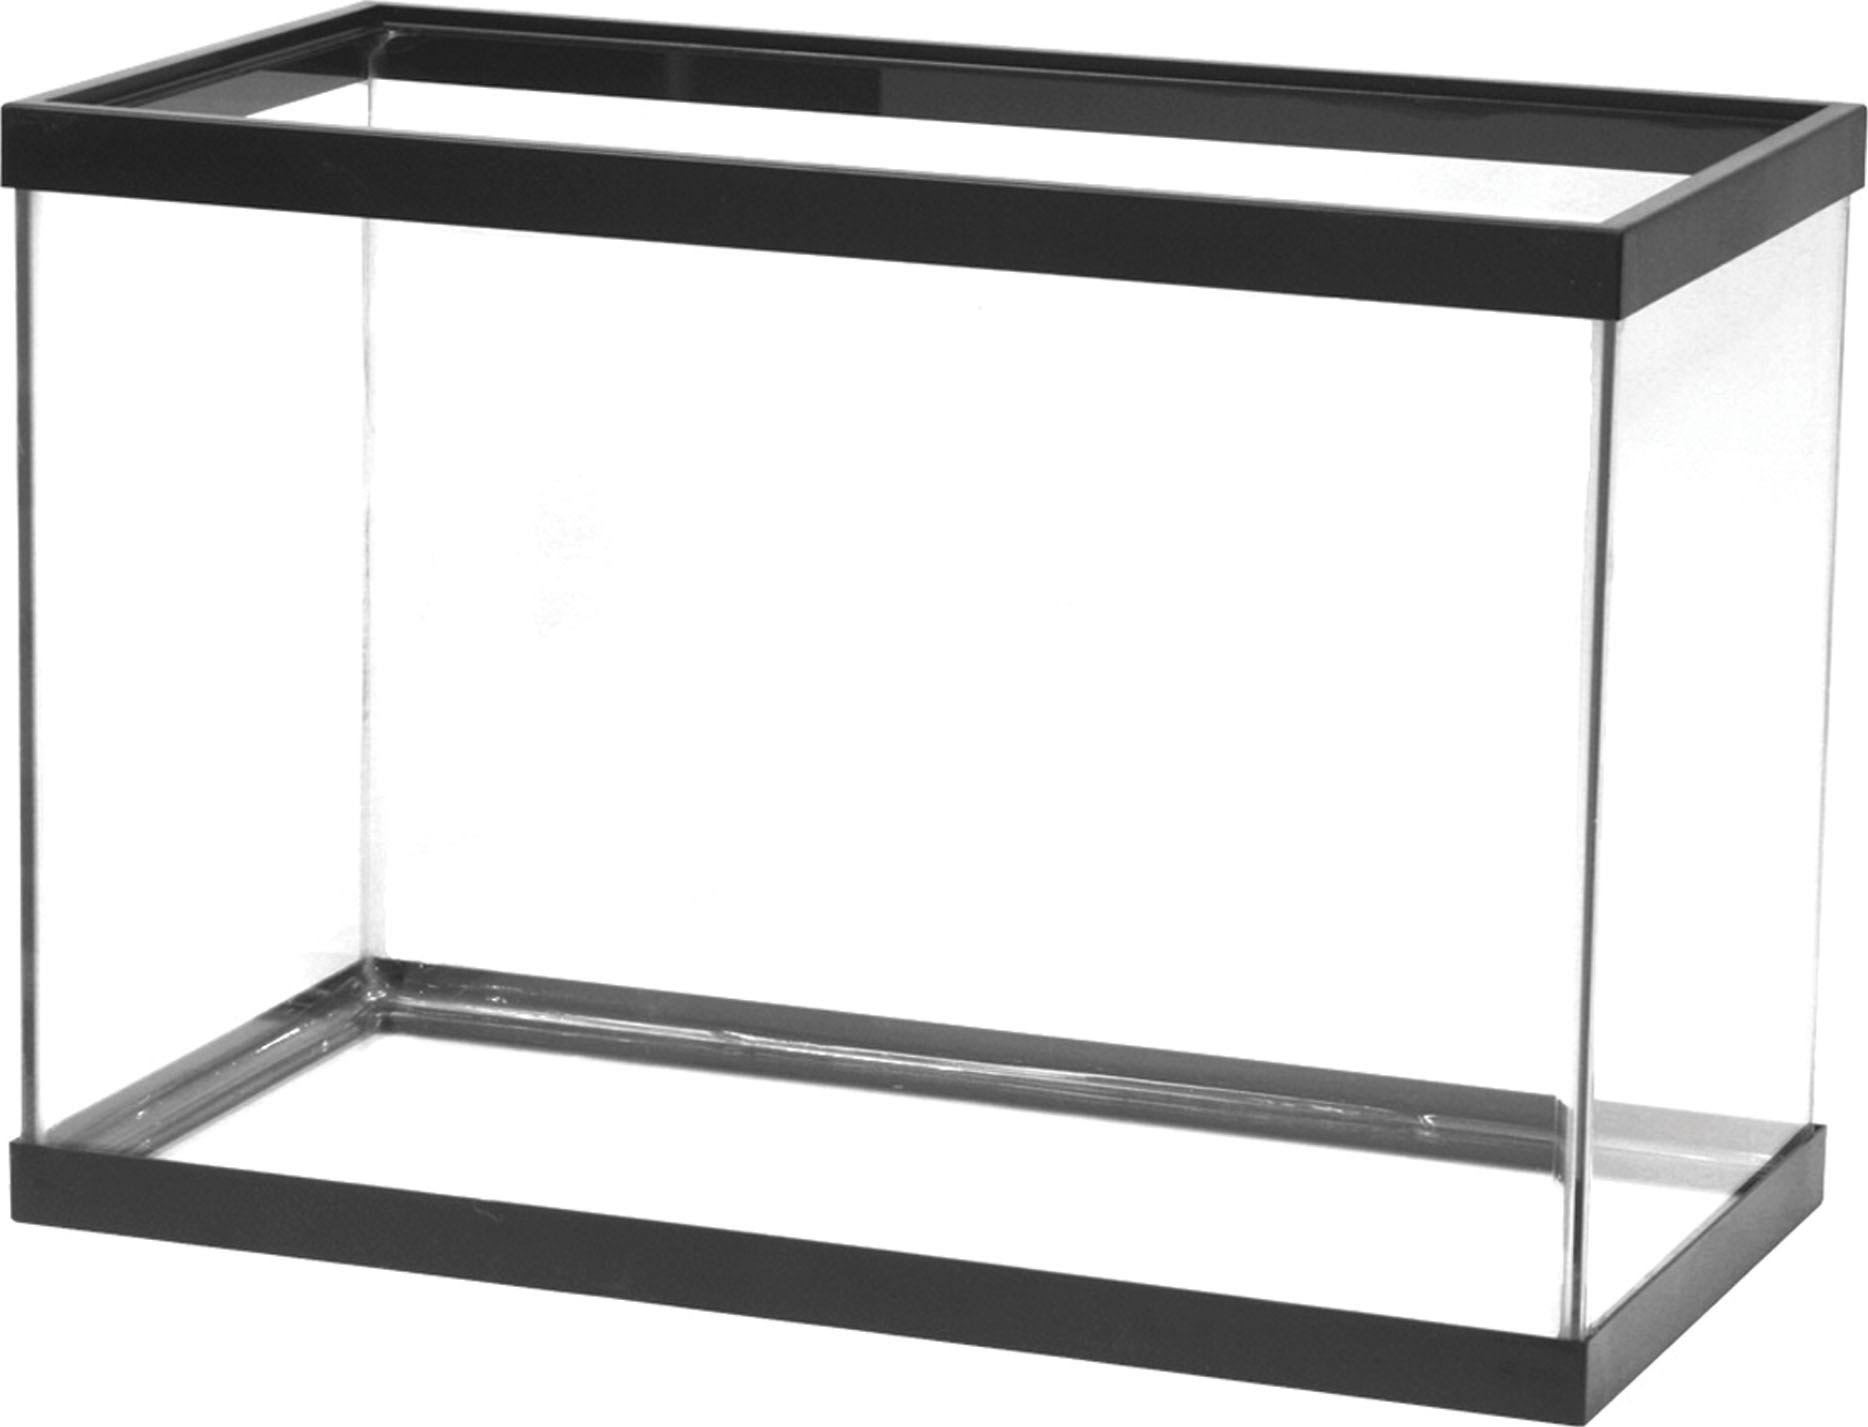 Aqueon 20 Gal High Standard Aquarium Tank, Black Trim